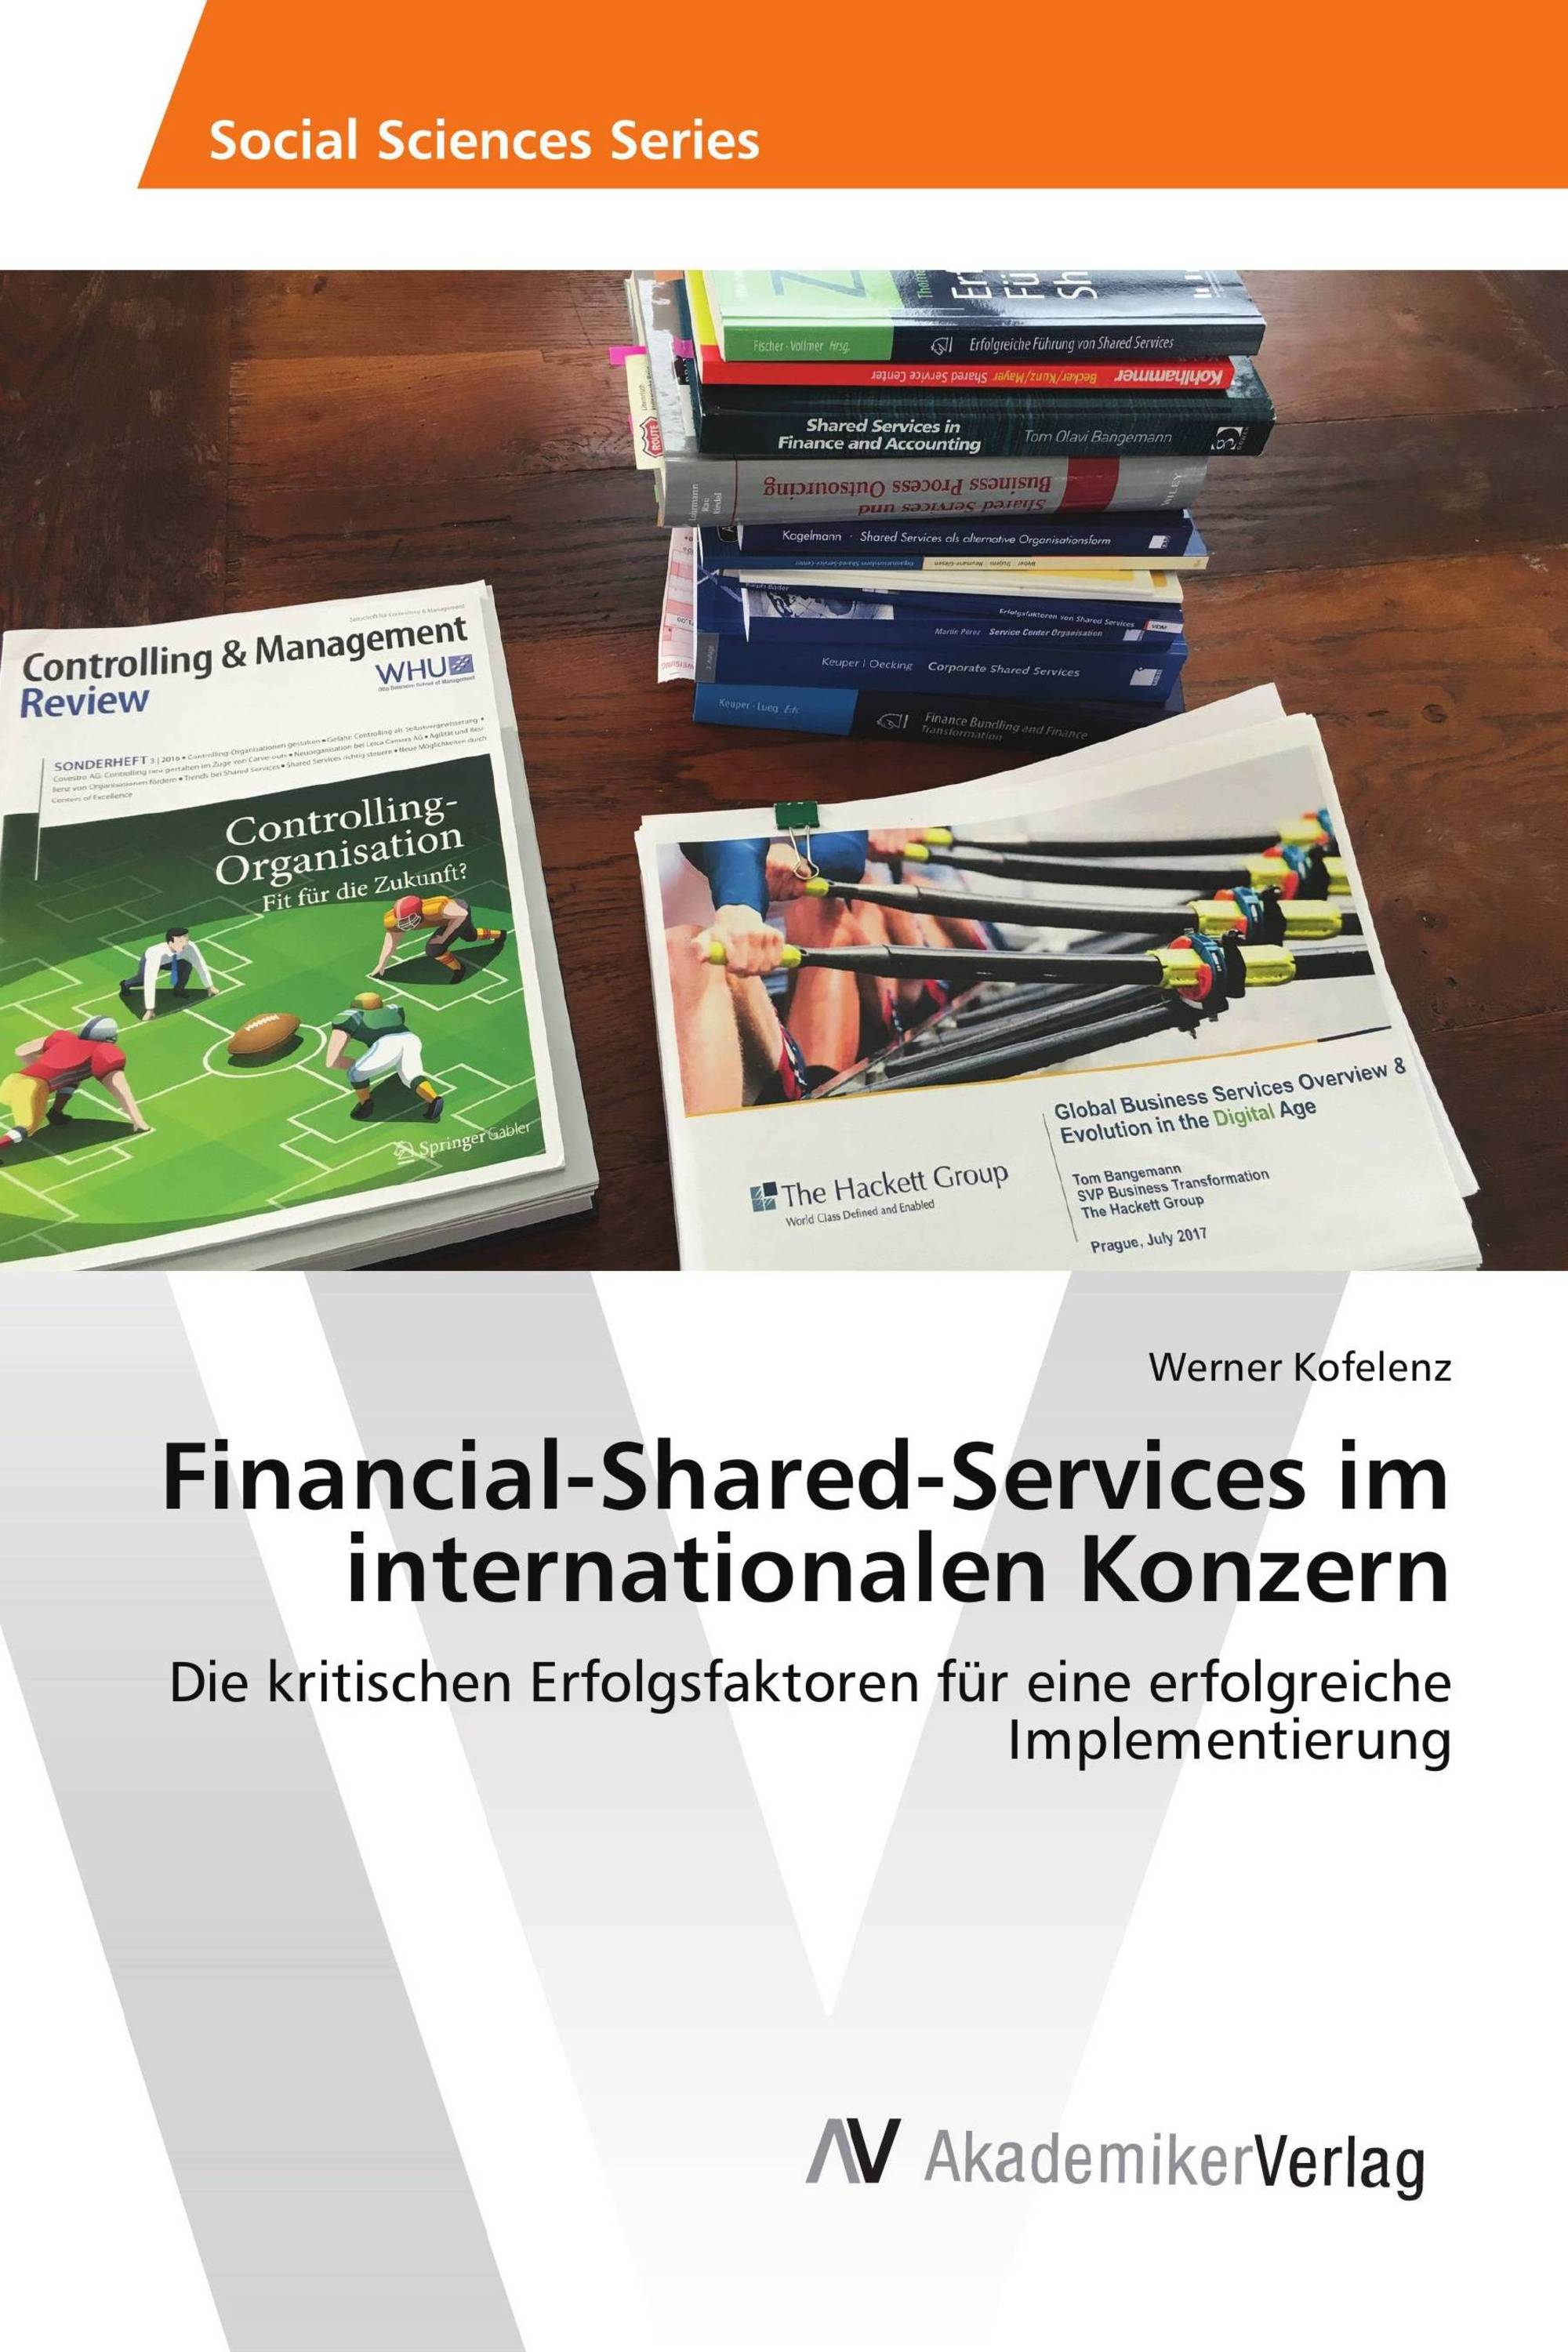 Financial-Shared-Services im internationalen Konzern